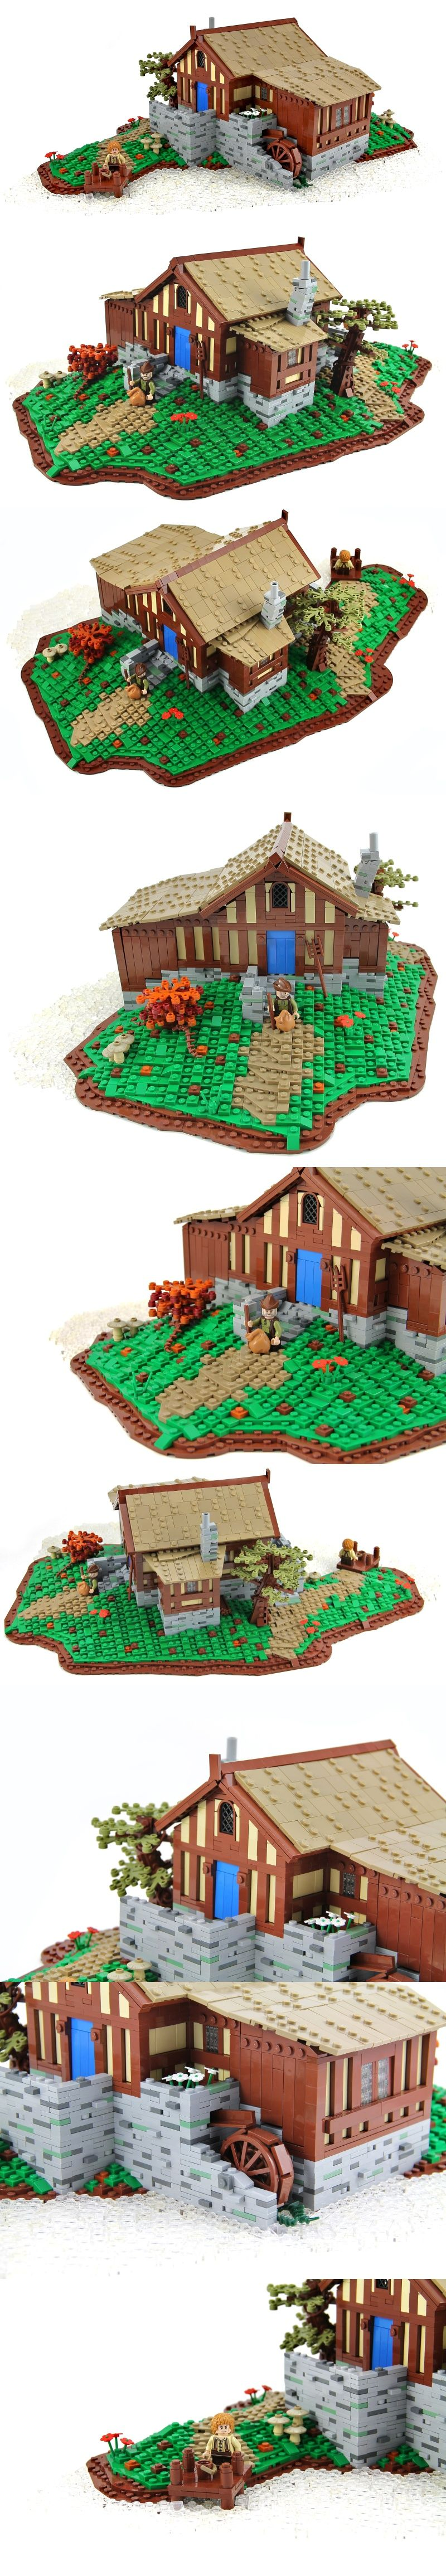 Small Mill Of Ted Sandyman in Hobbiton From Lord Of The Ring #LOTR #Hobbit #LEGO